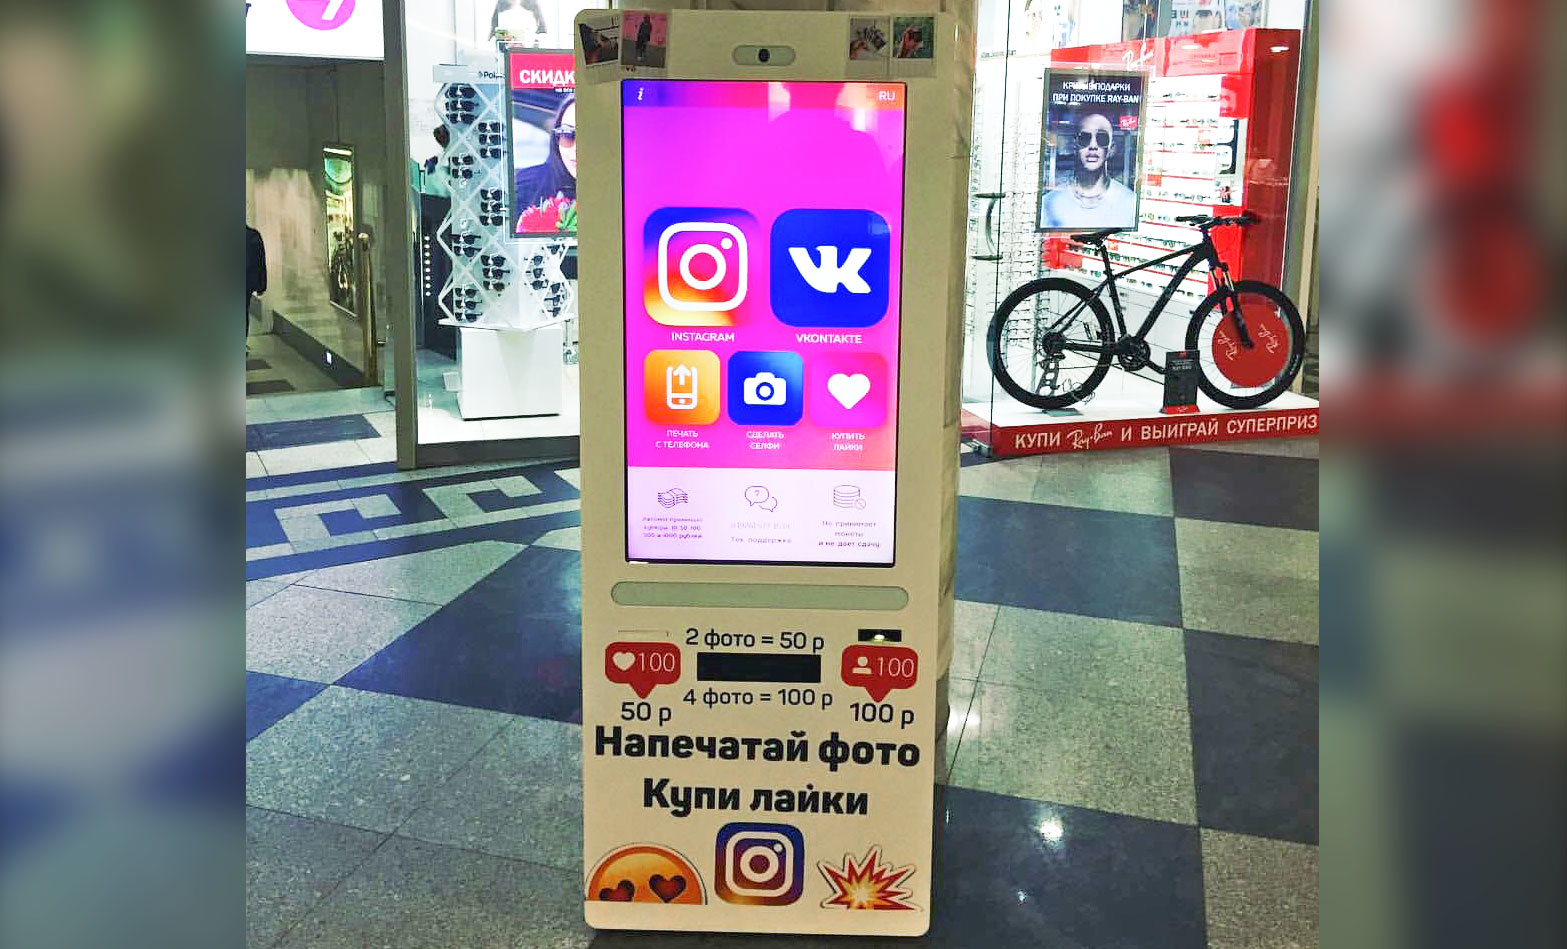 There's A Vending Machine In Russia Which Sells Instagram Likes